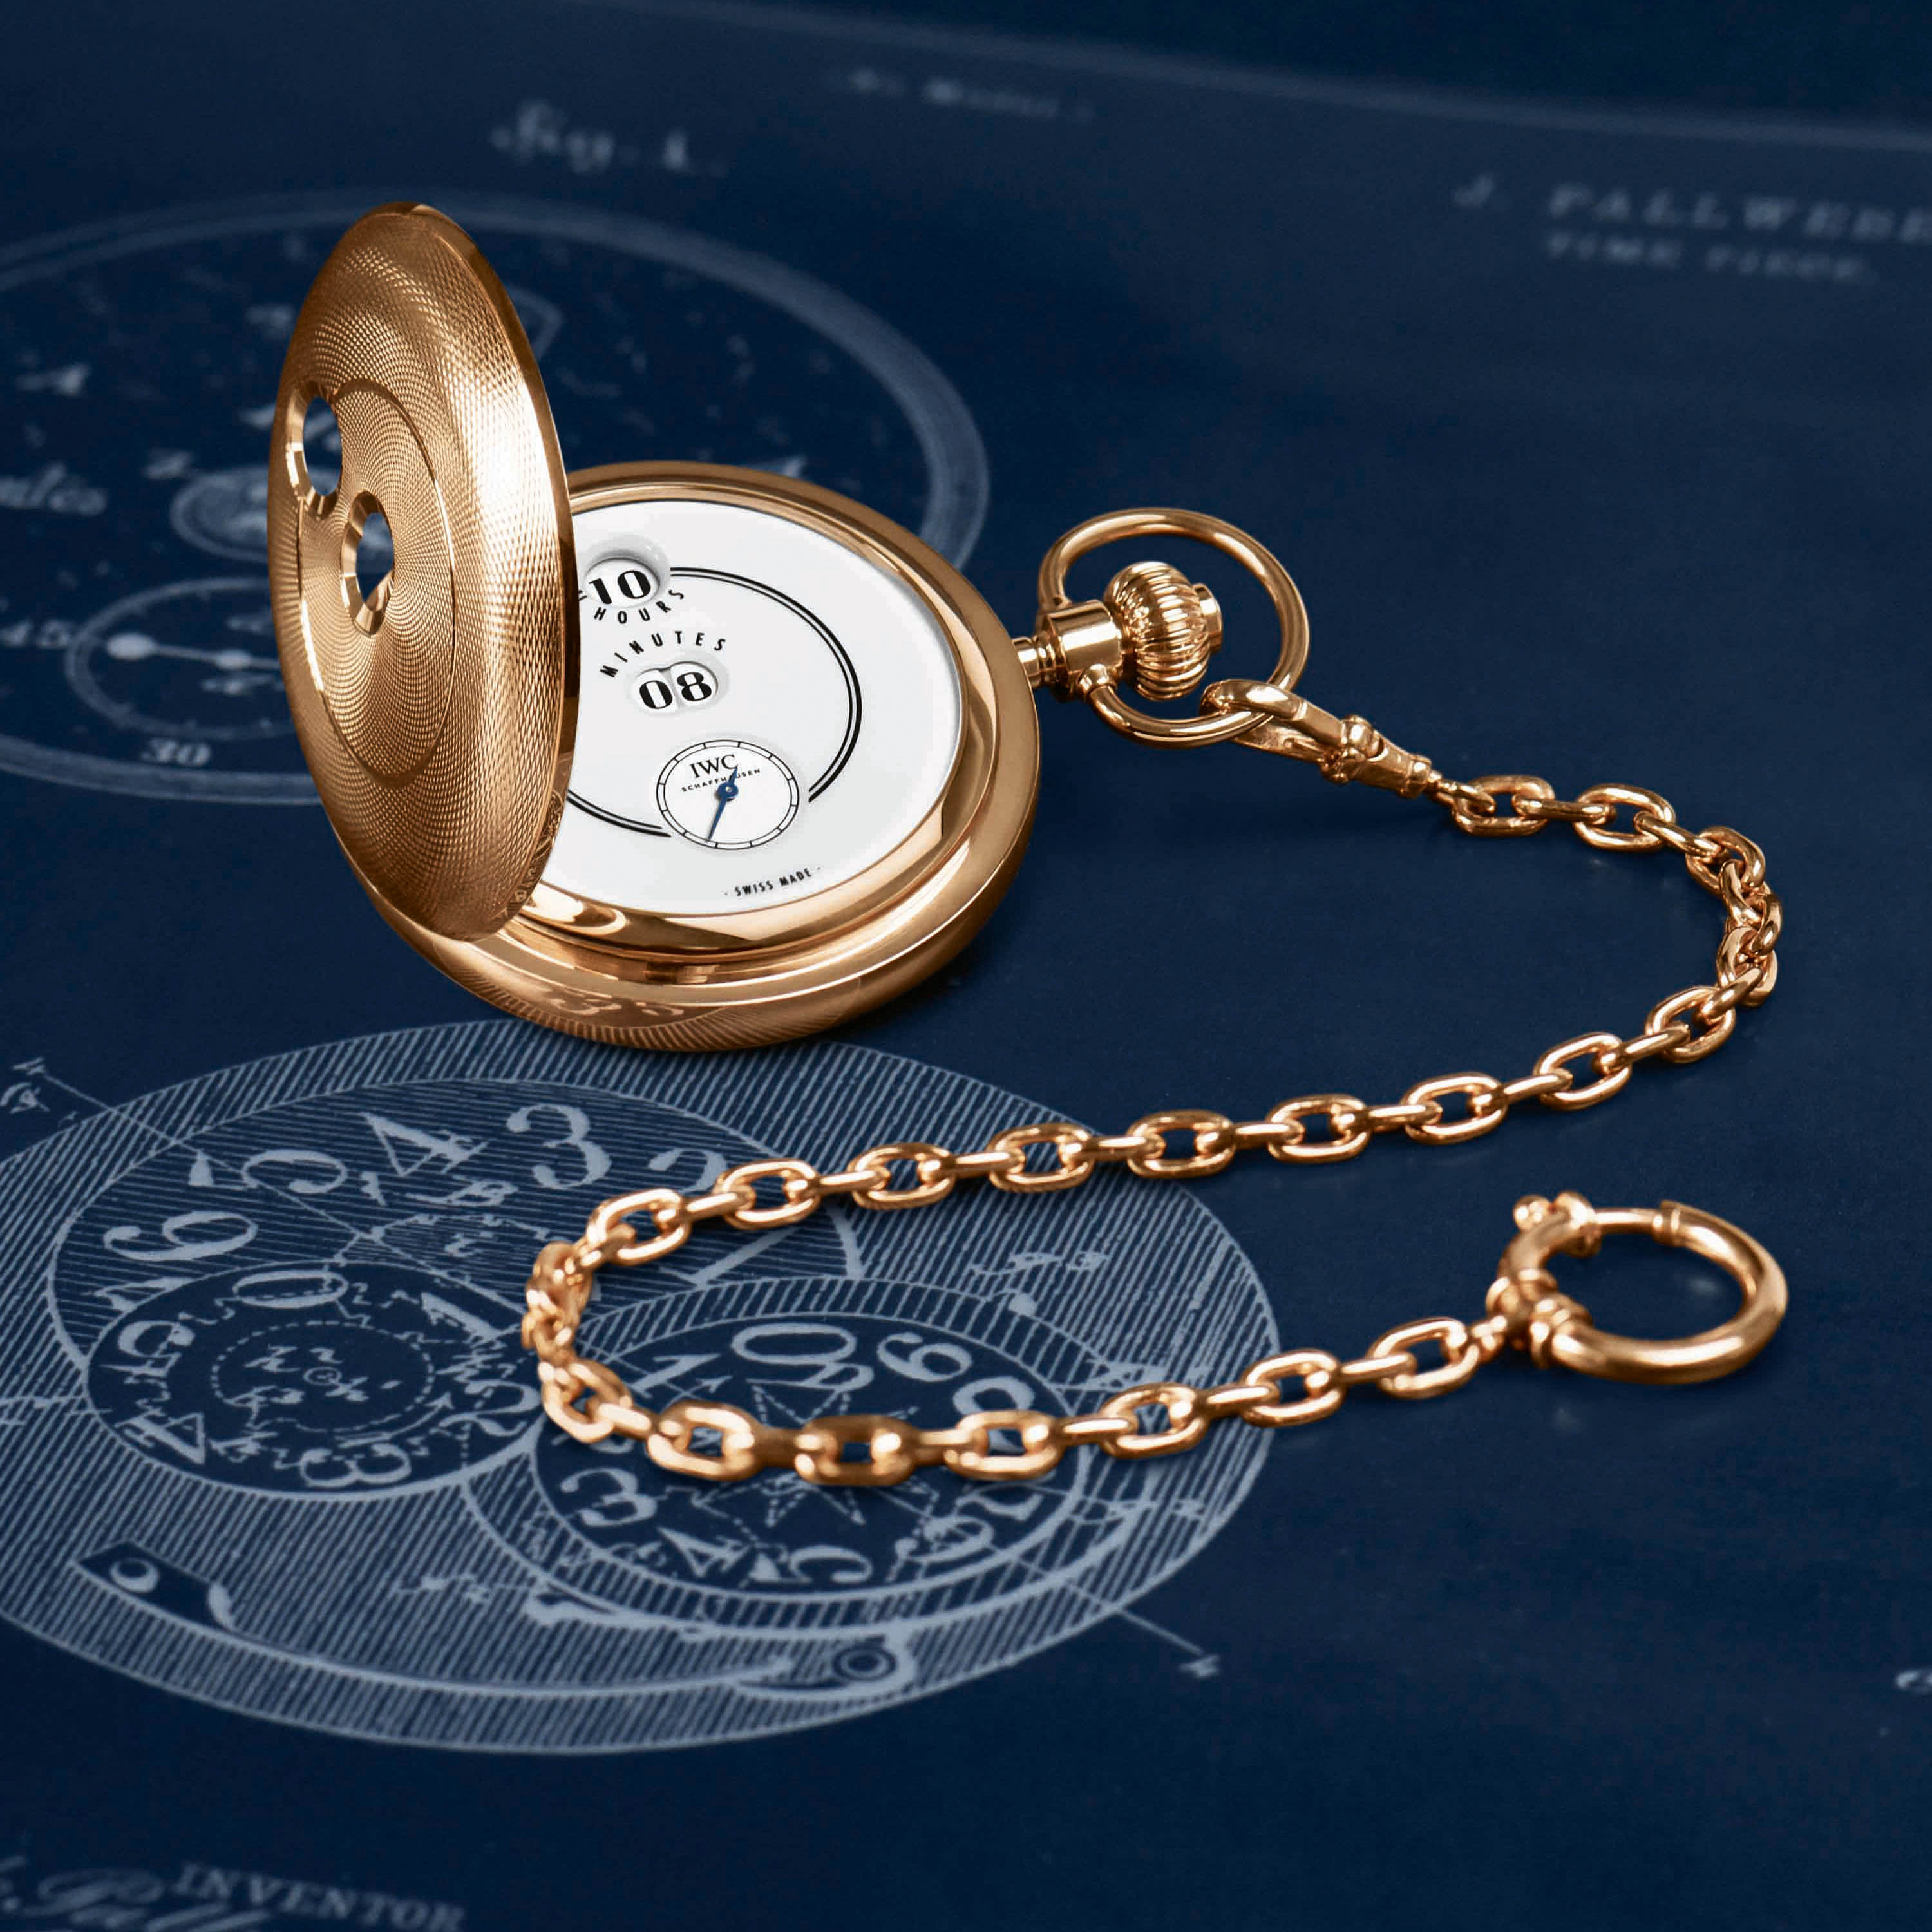 IWC Schaffhausen - Pallweber pocket watches Image